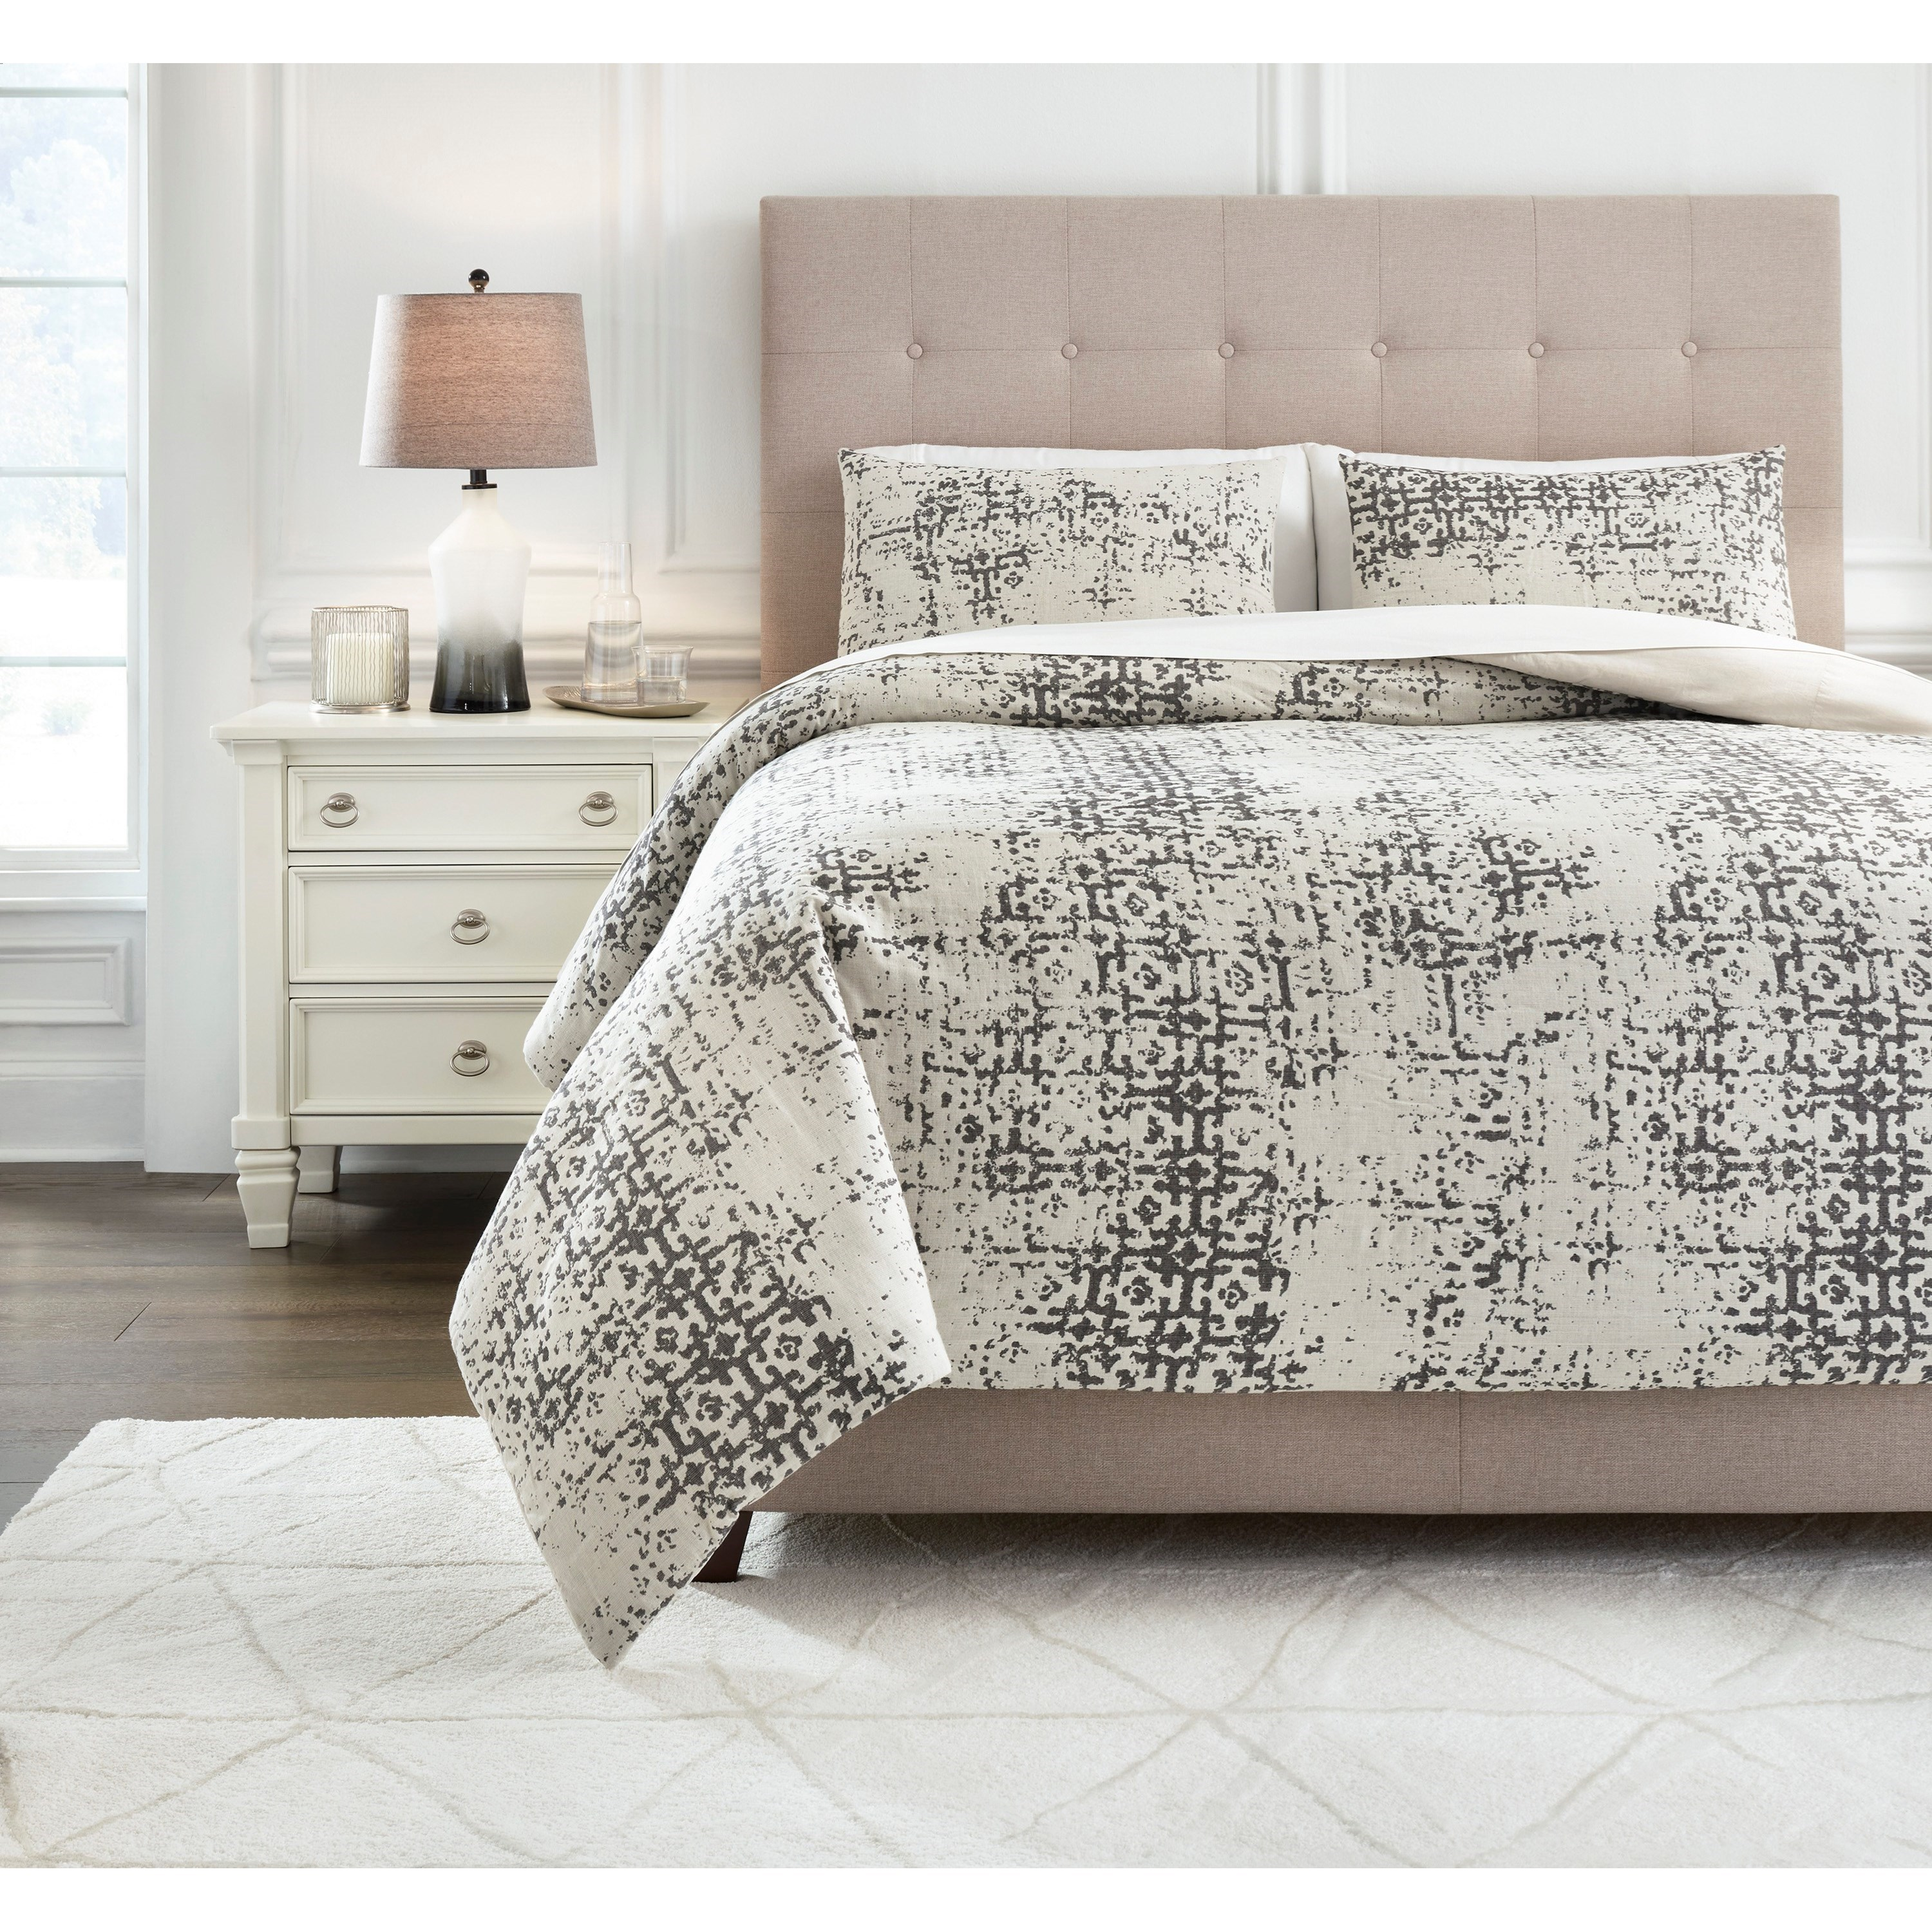 Bedding Sets King Addey Bone/Charcoal Comforter Set by Signature Design by Ashley at Houston's Yuma Furniture